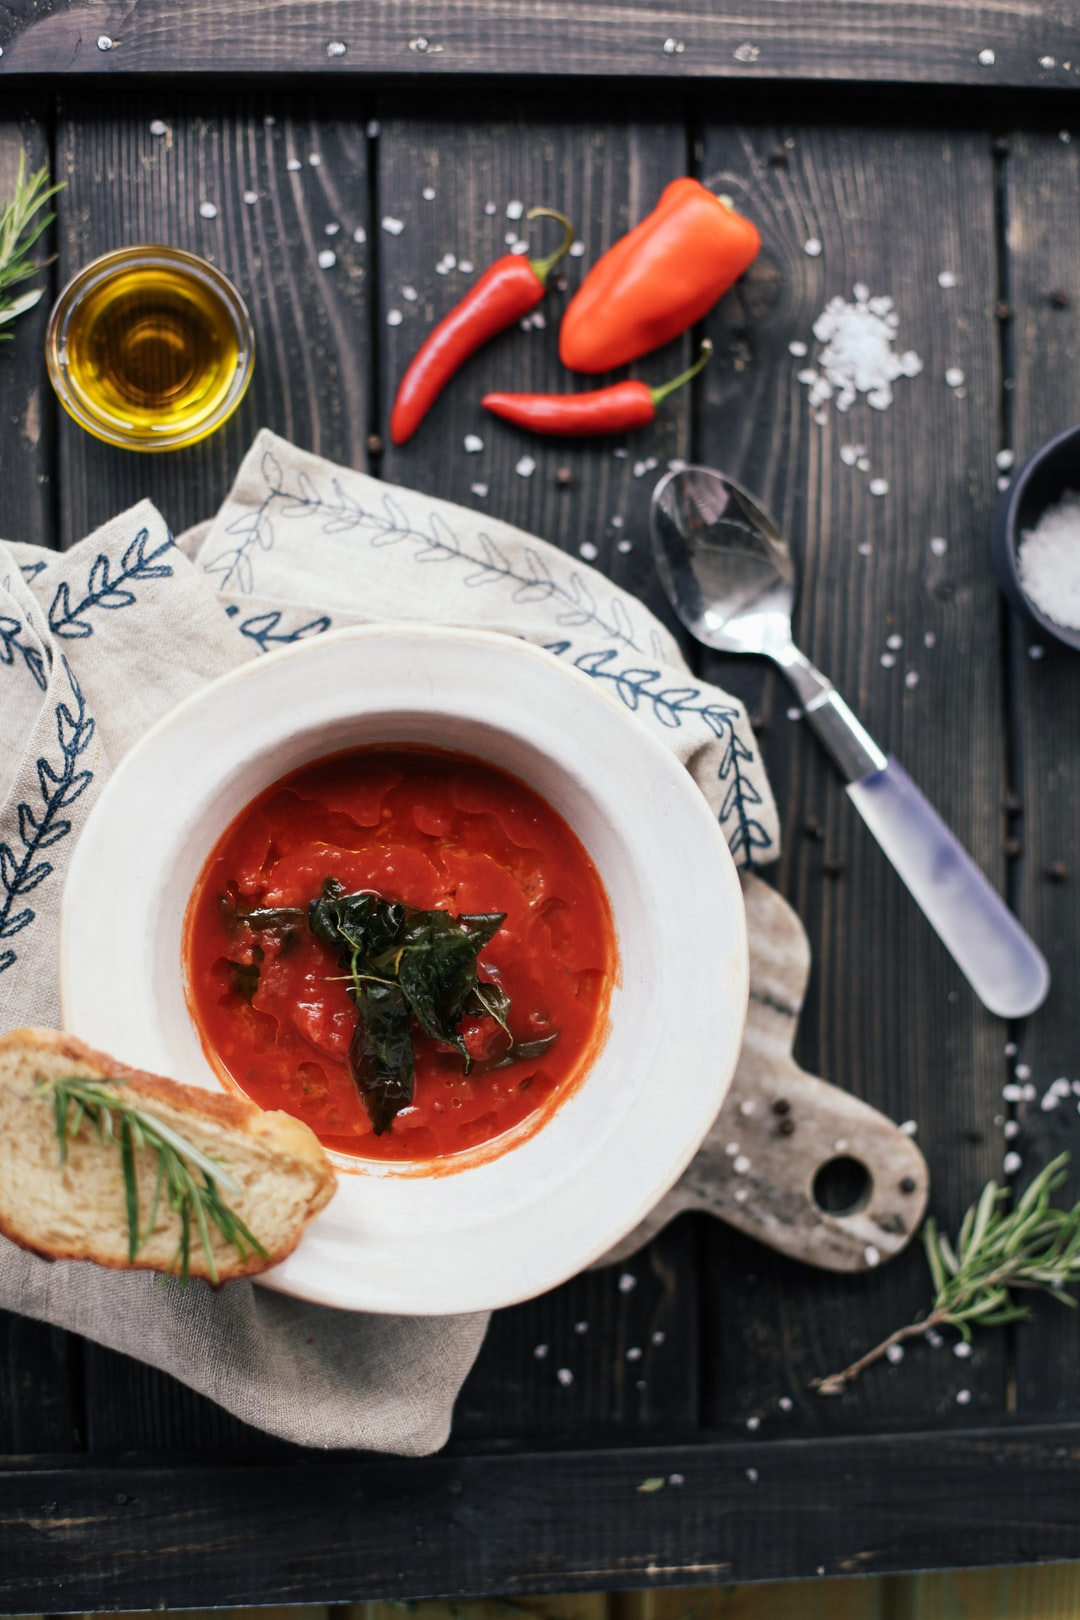 Red soup gazpacho on a wood table with herbs around, top view